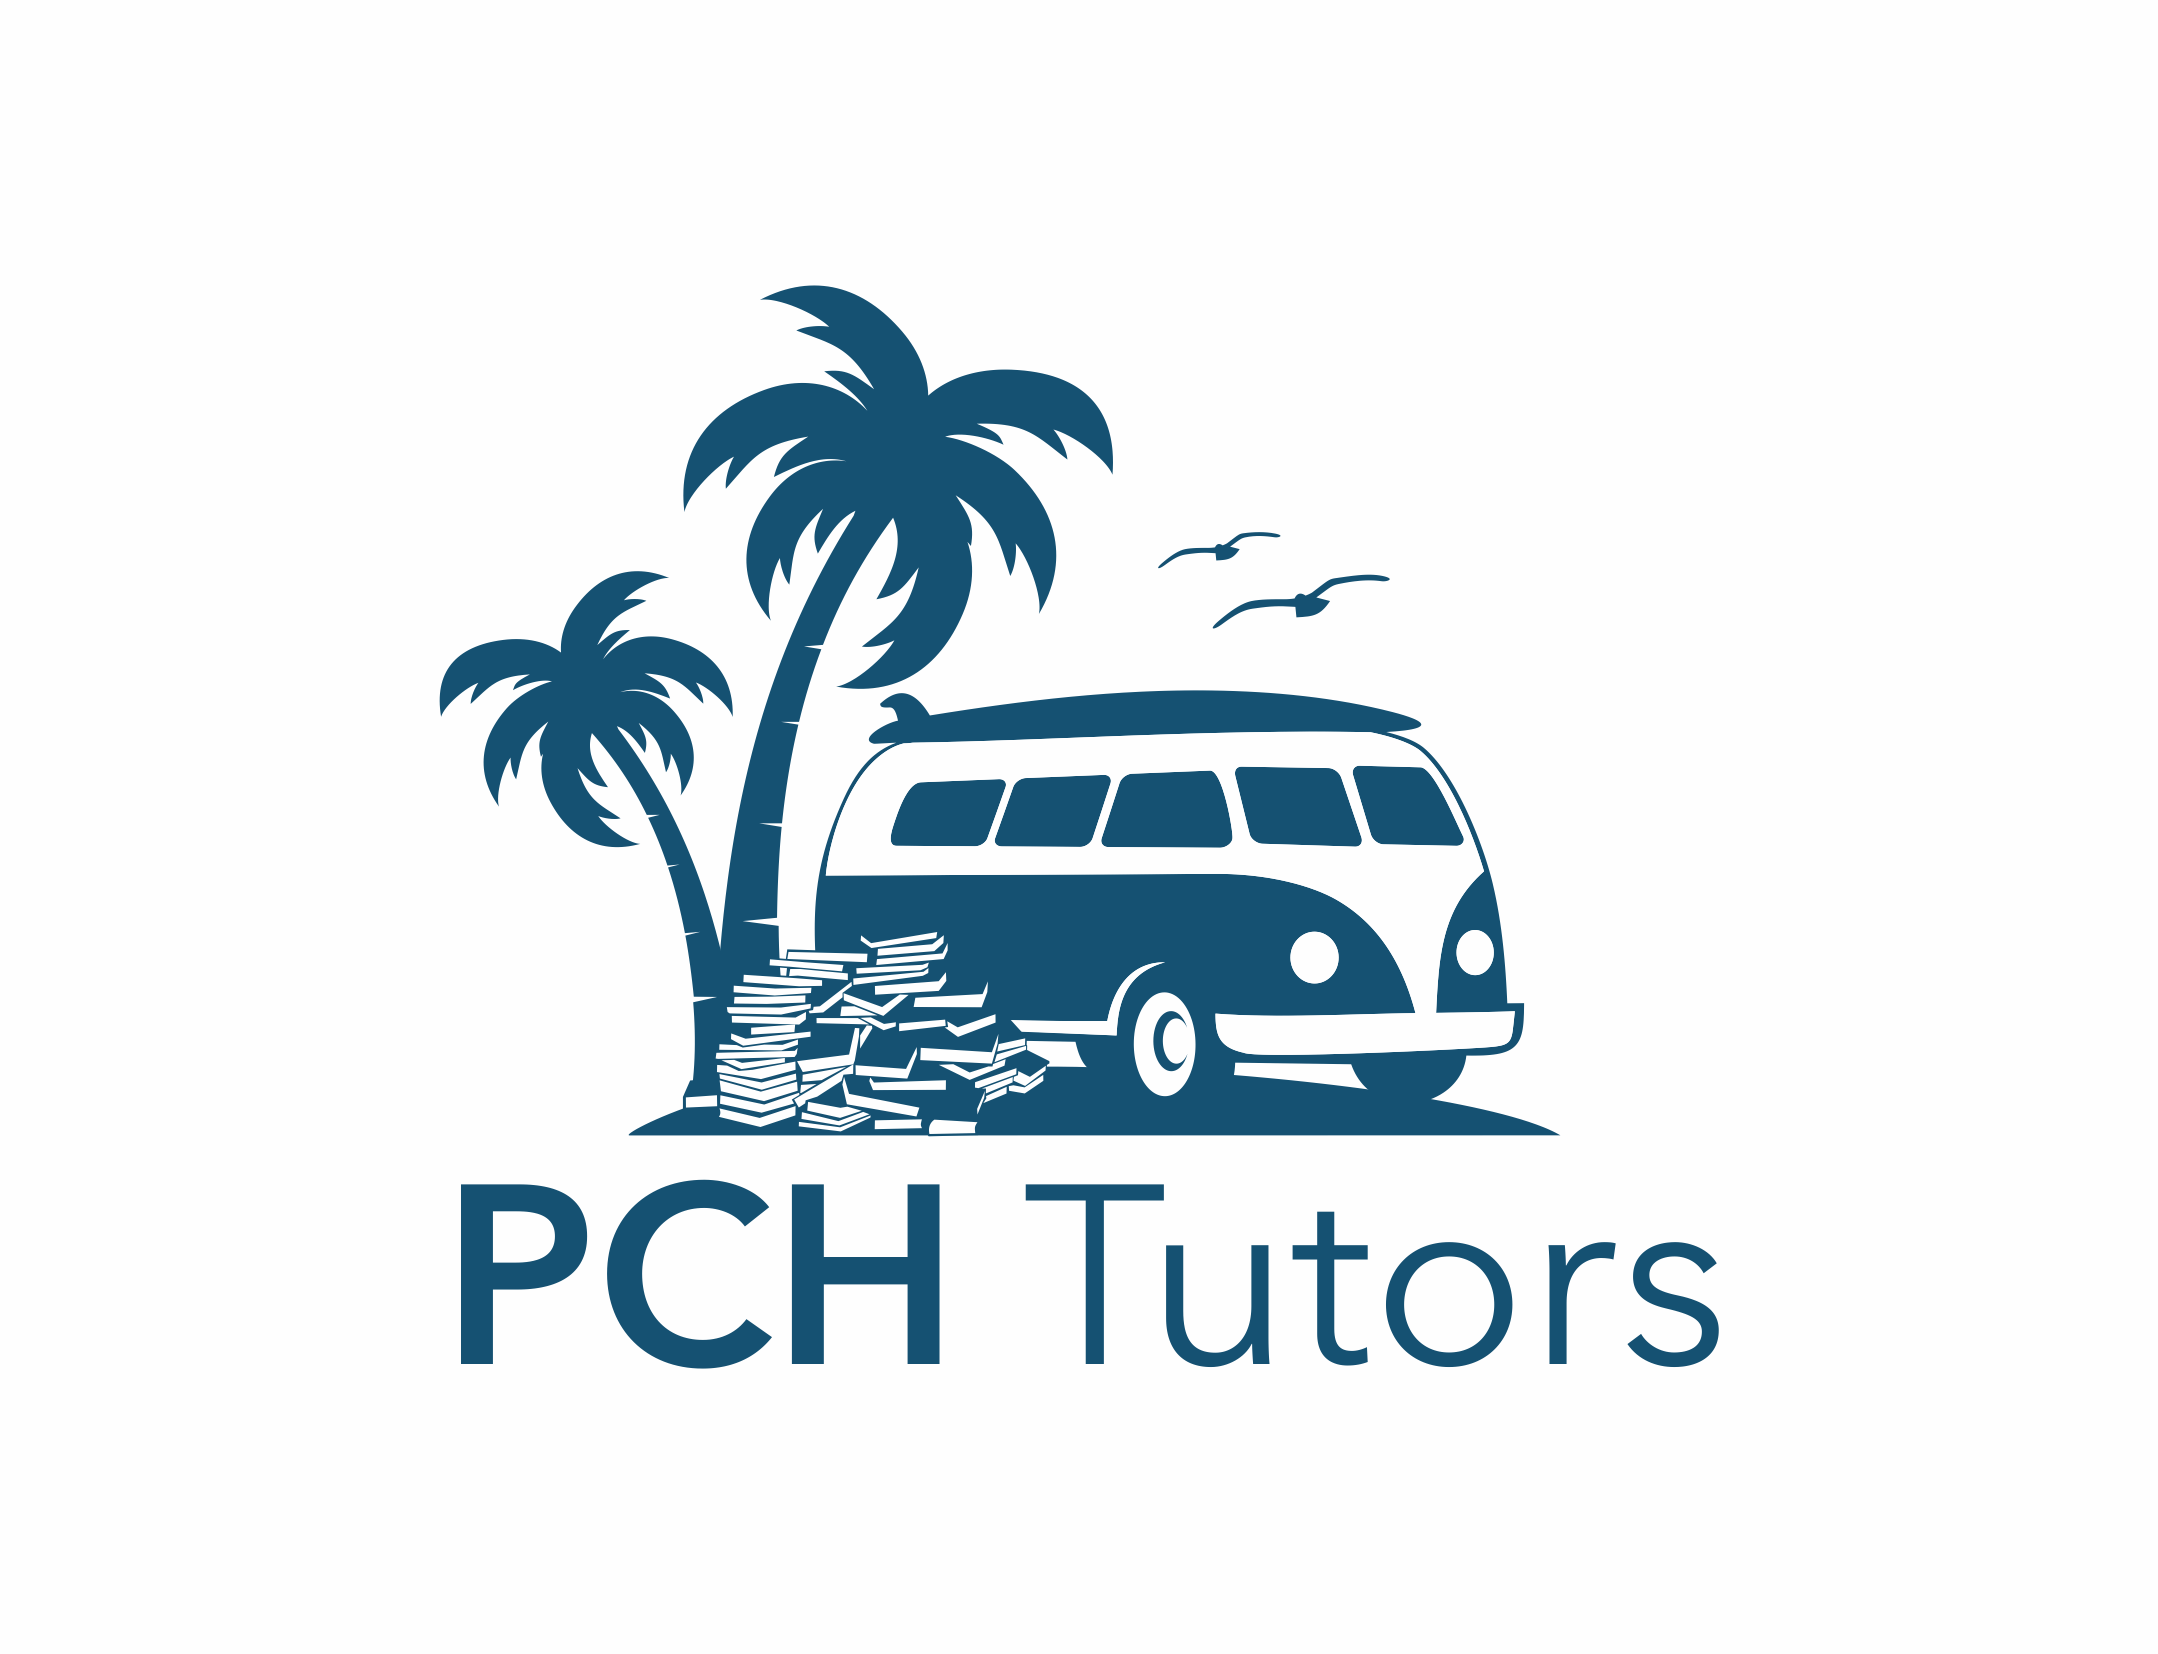 Create An Iconic Logo for a Private Tutoring Company that includes surf board, VW Surf van, or animal